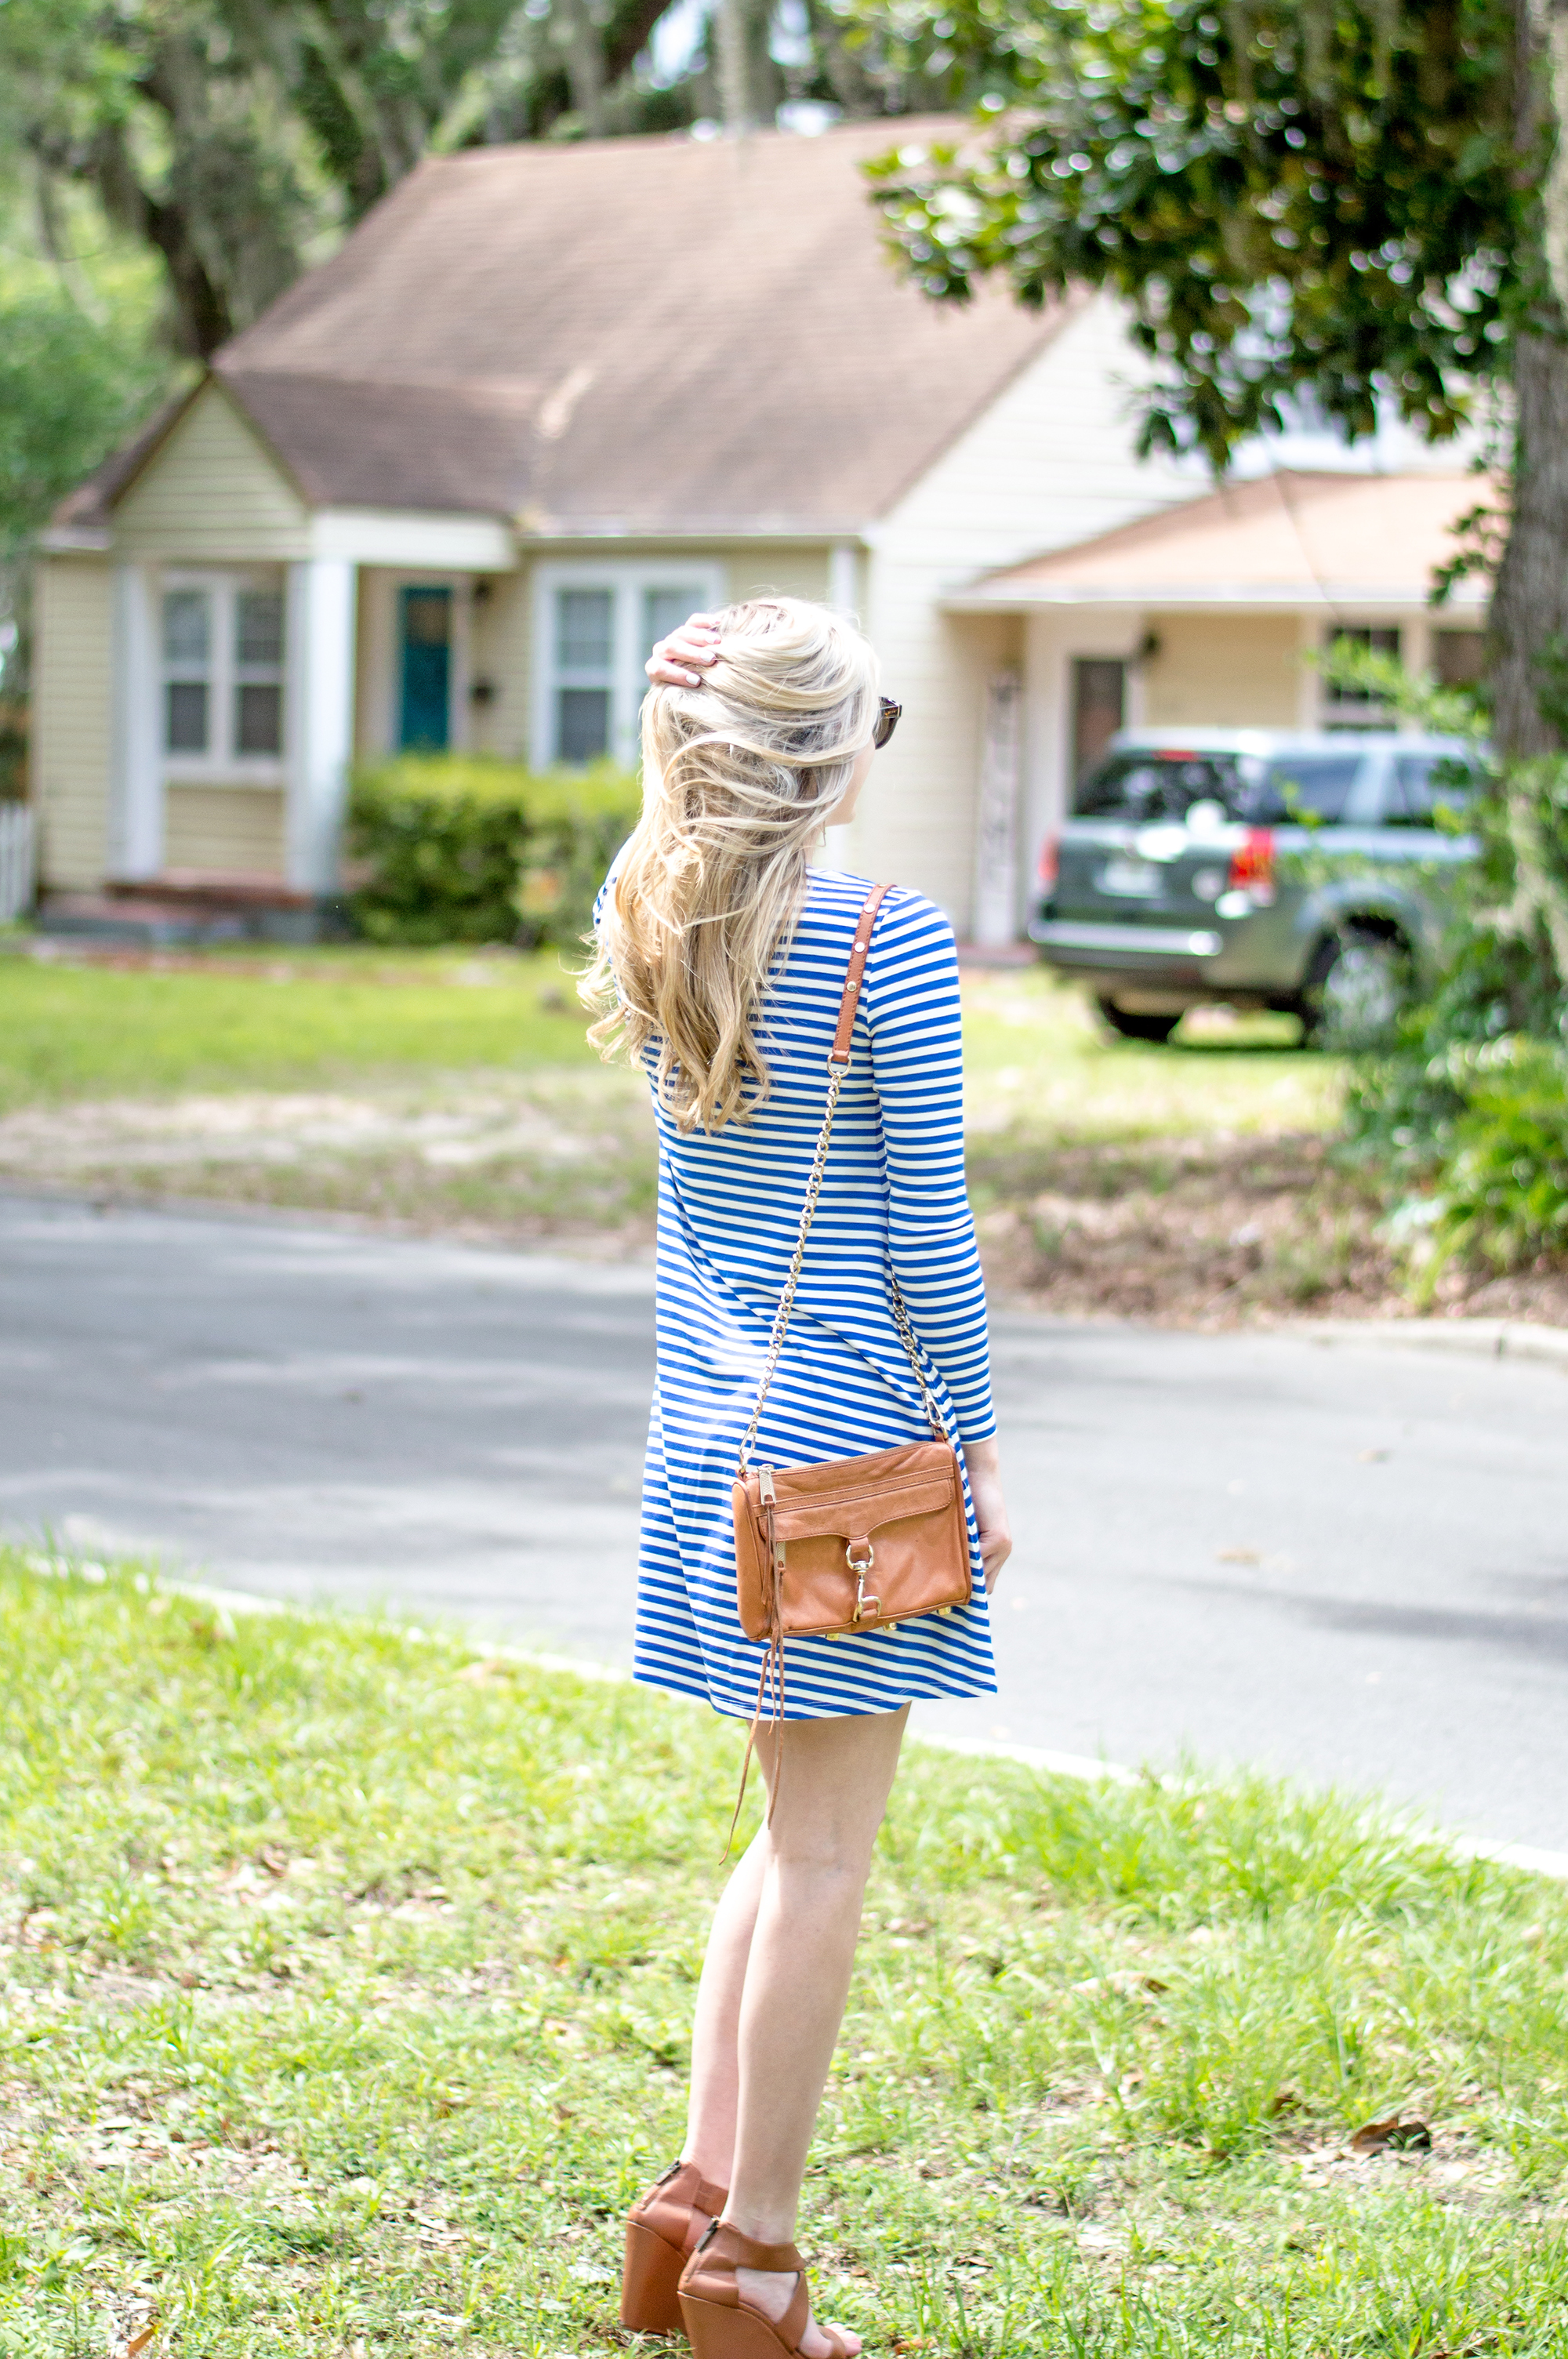 styelled-blog-fashion-style-beauty-lifestyle-blogger-florida-like-to-know-it-jane-hudson-stripes-striped-stripe-dress-sundress-memorial-day-diff-eyewear-sunglasses-rebecca-minkoff-07